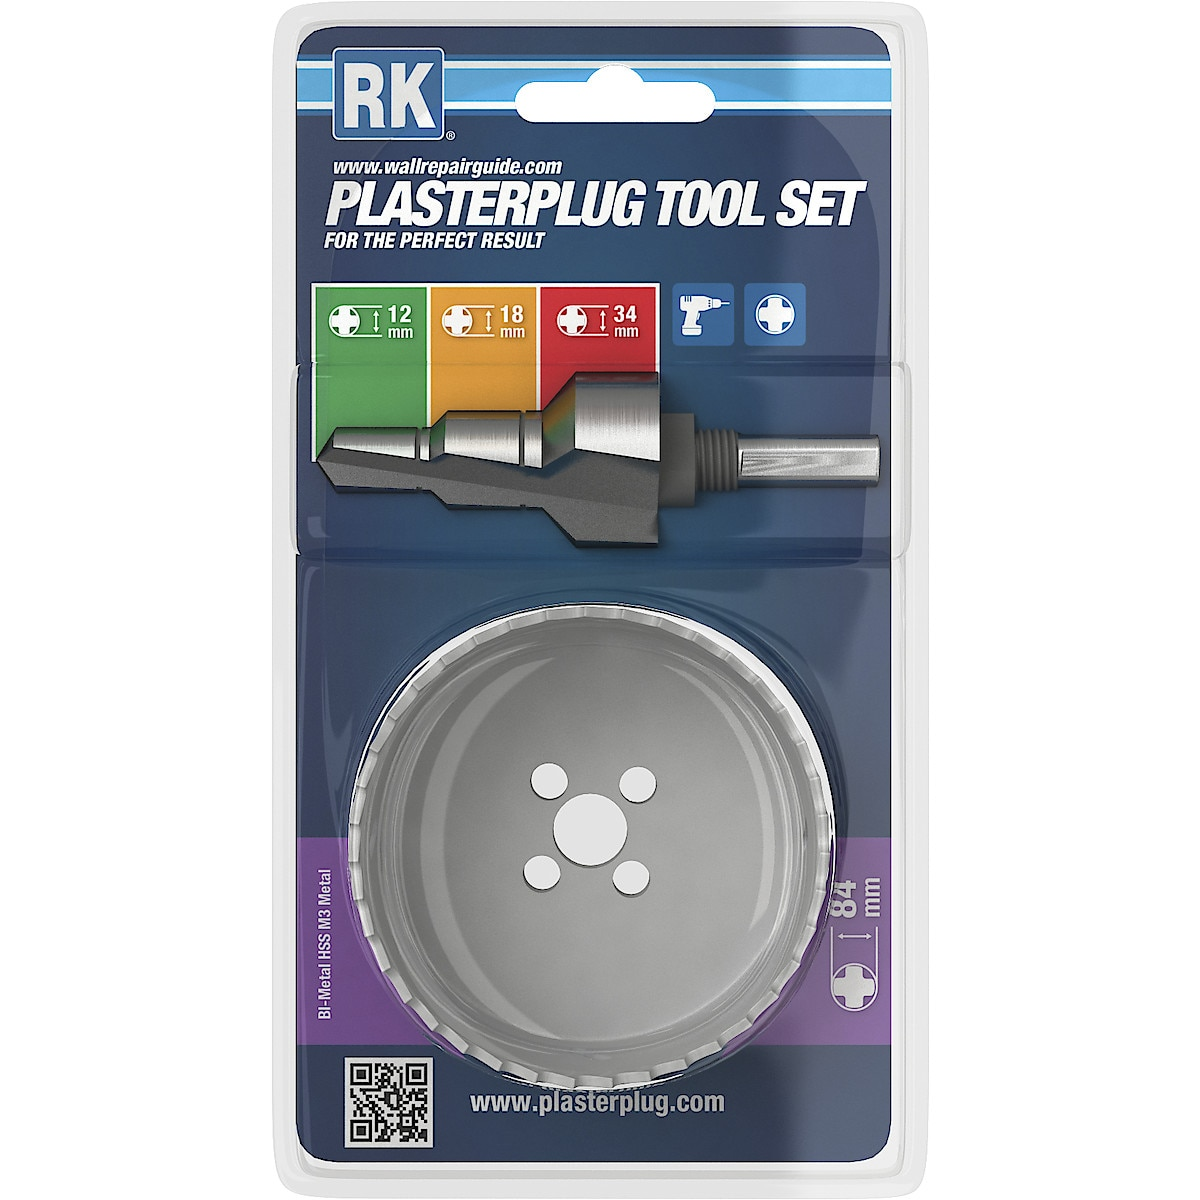 Plasterplug Tool Set RK